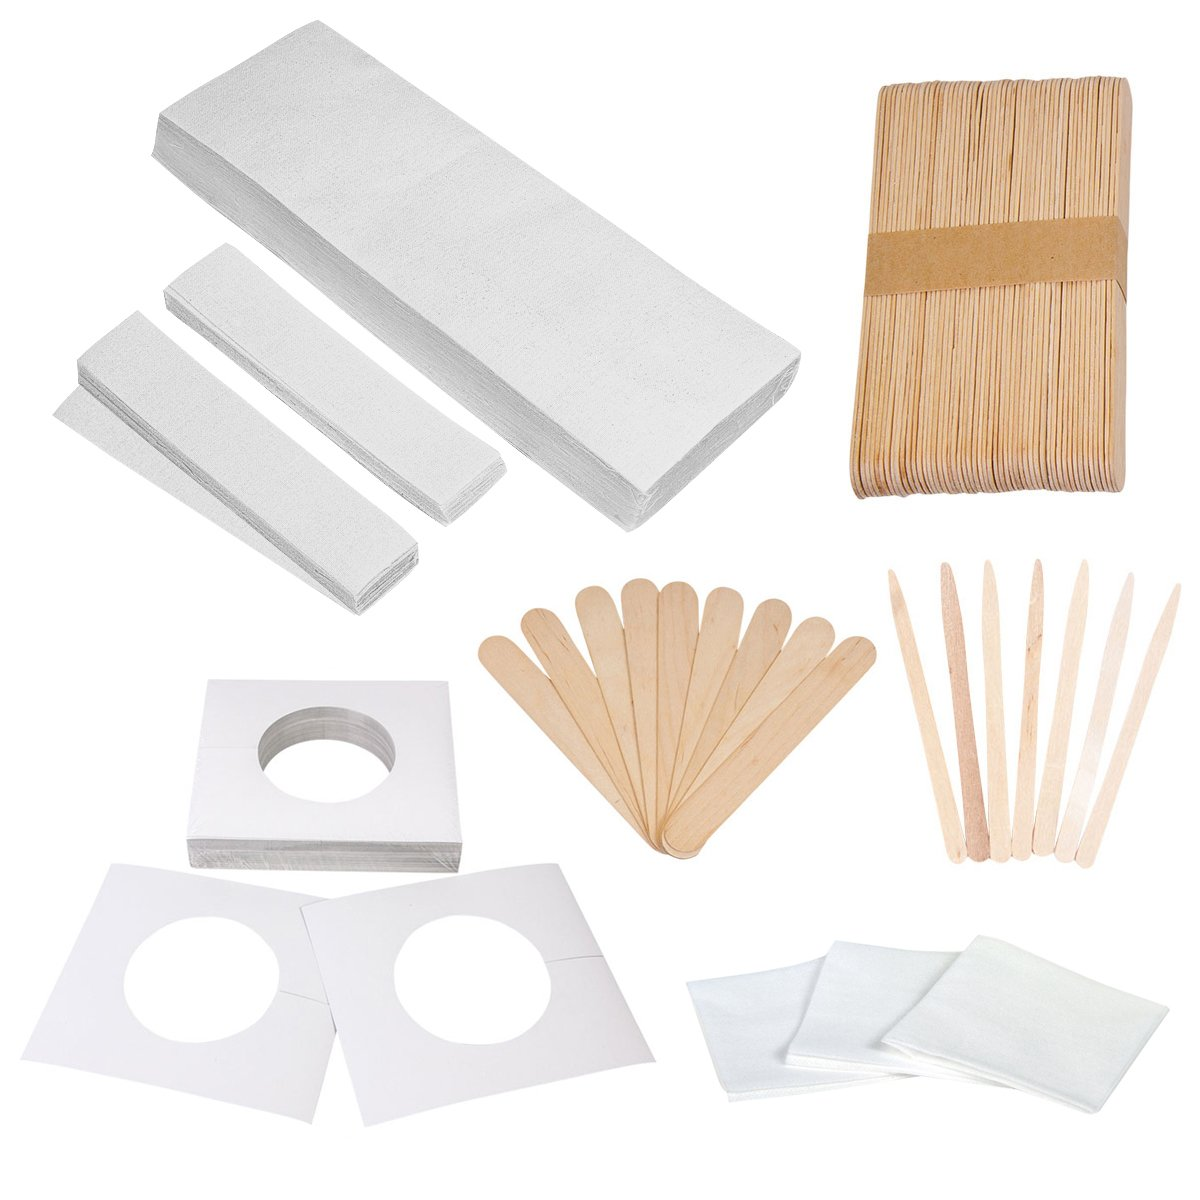 JMT Assorted Waxing Strips Kit - 60 Large 60 Small Muslin Strips and Accessories JMT Group